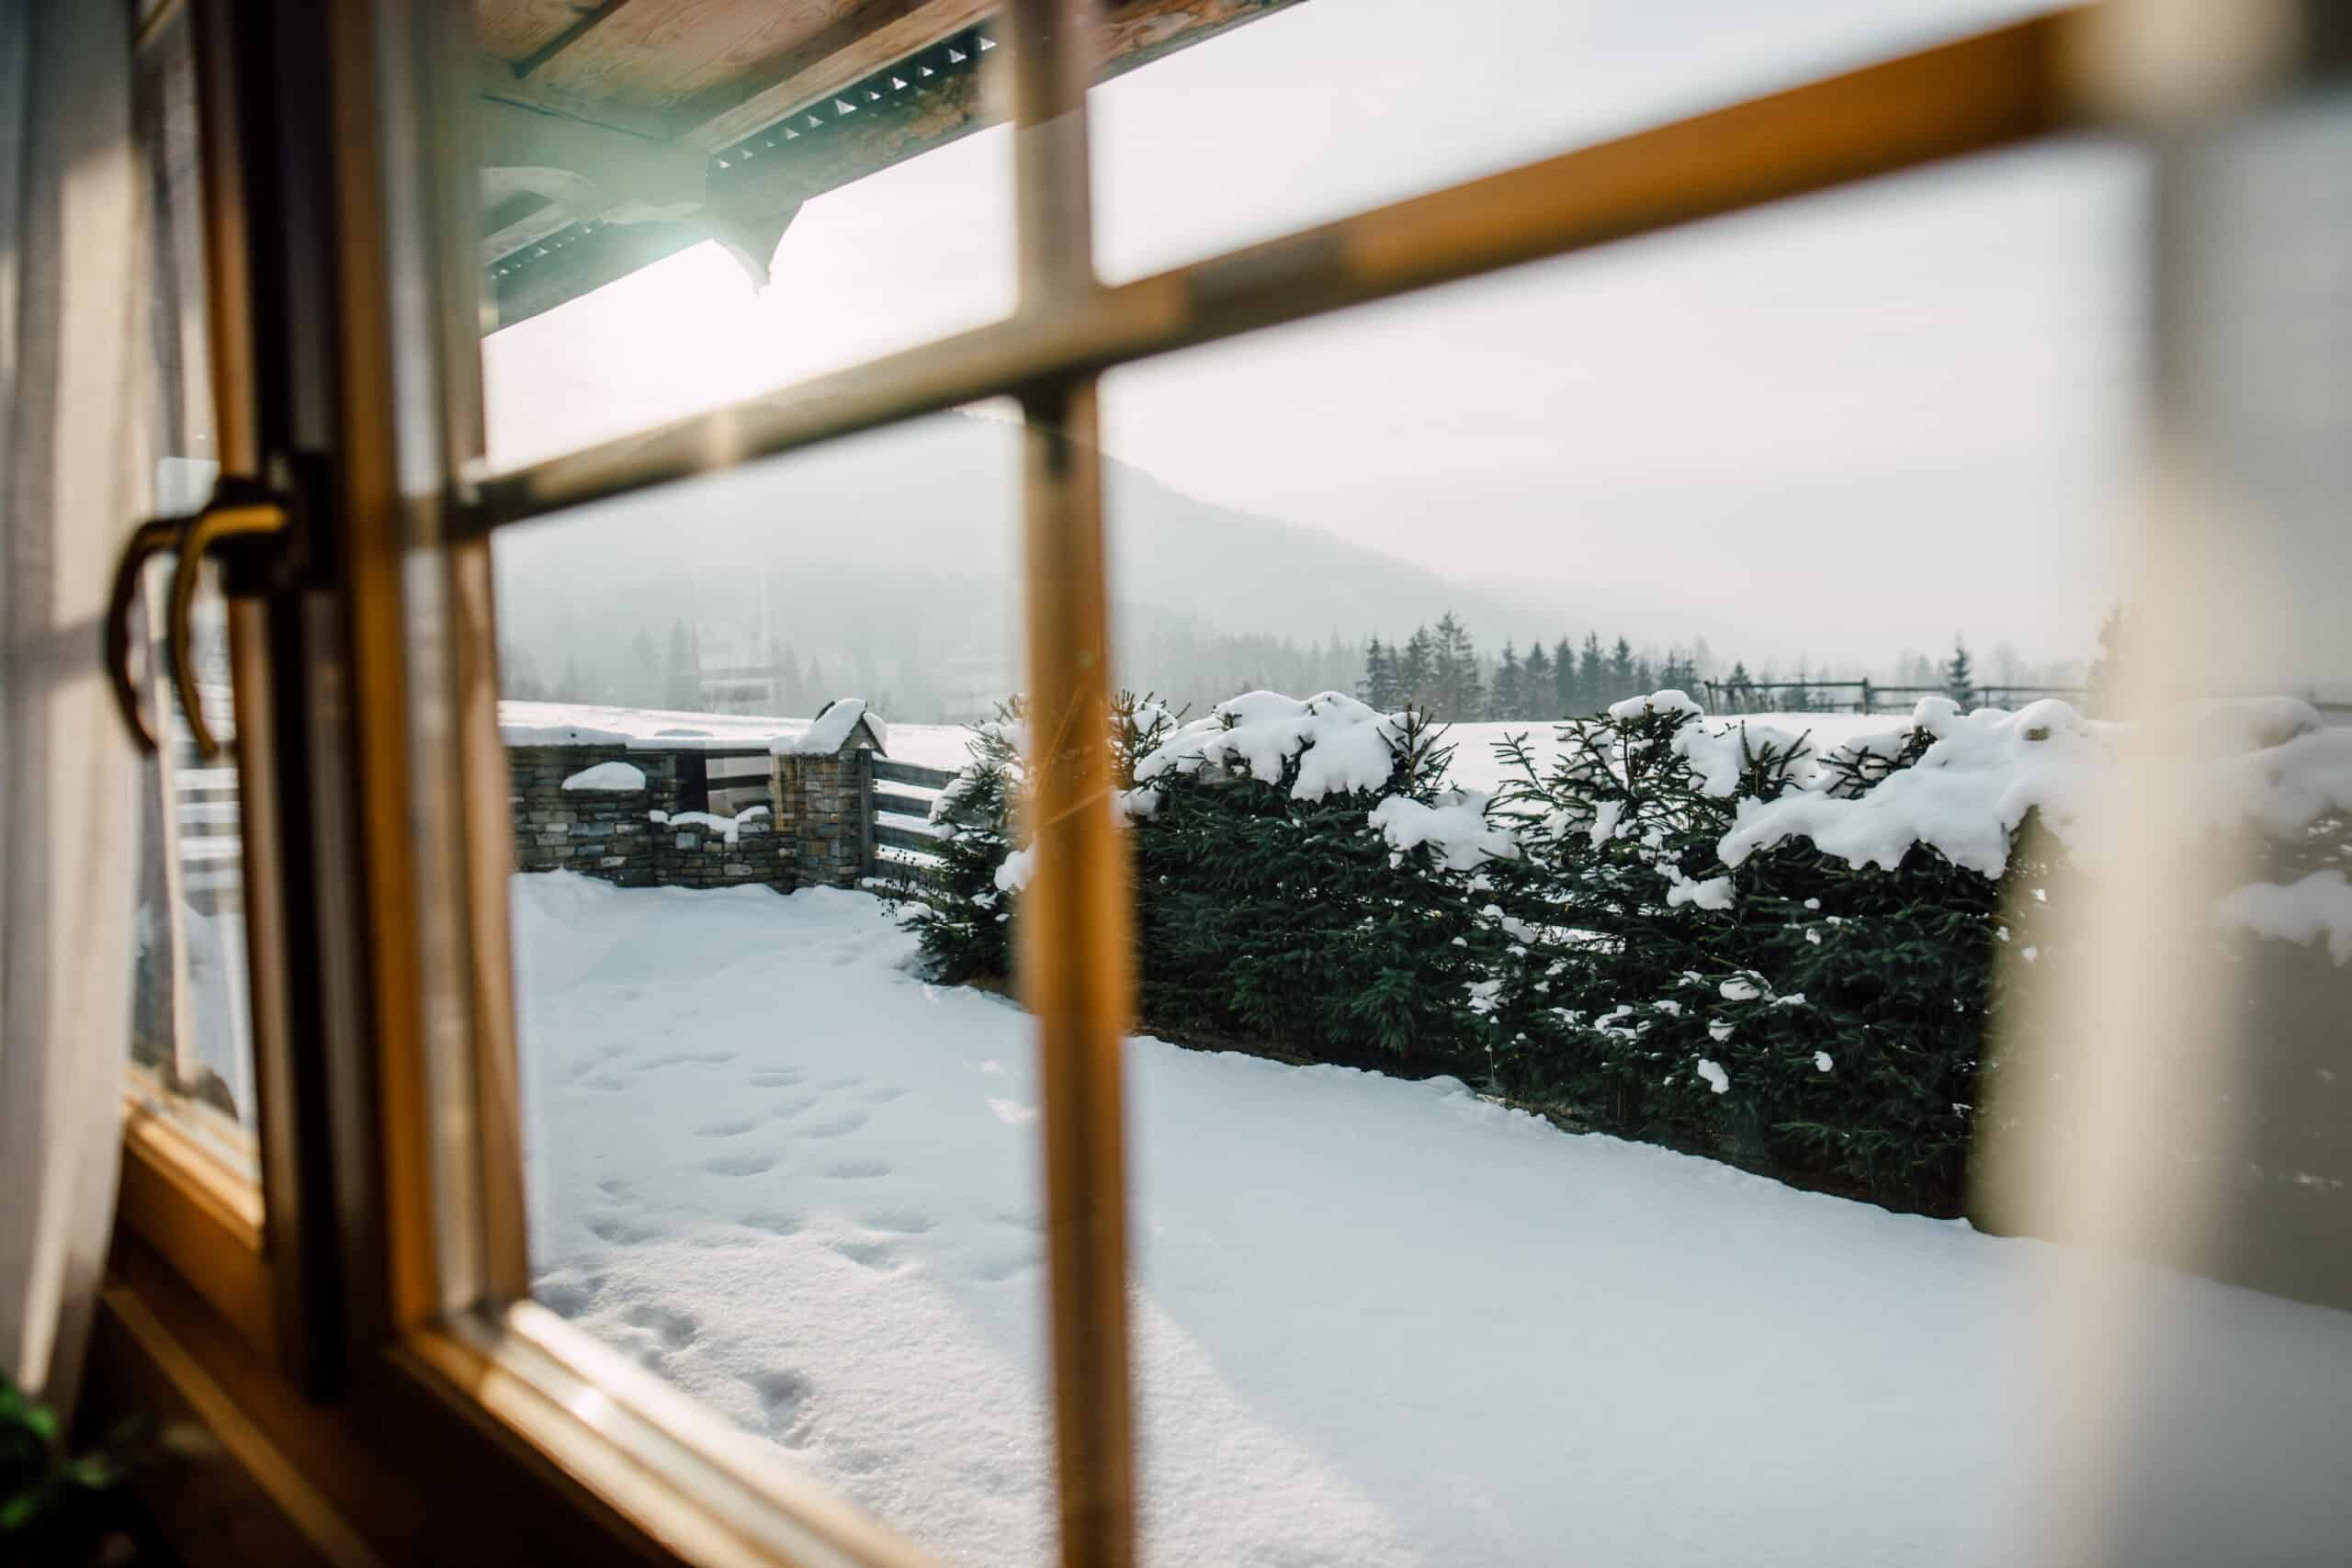 airbnb stowe vt vermont - image of view as seen from inside a window. a snowy scene with snow covered fir trees and a hint of sunshine